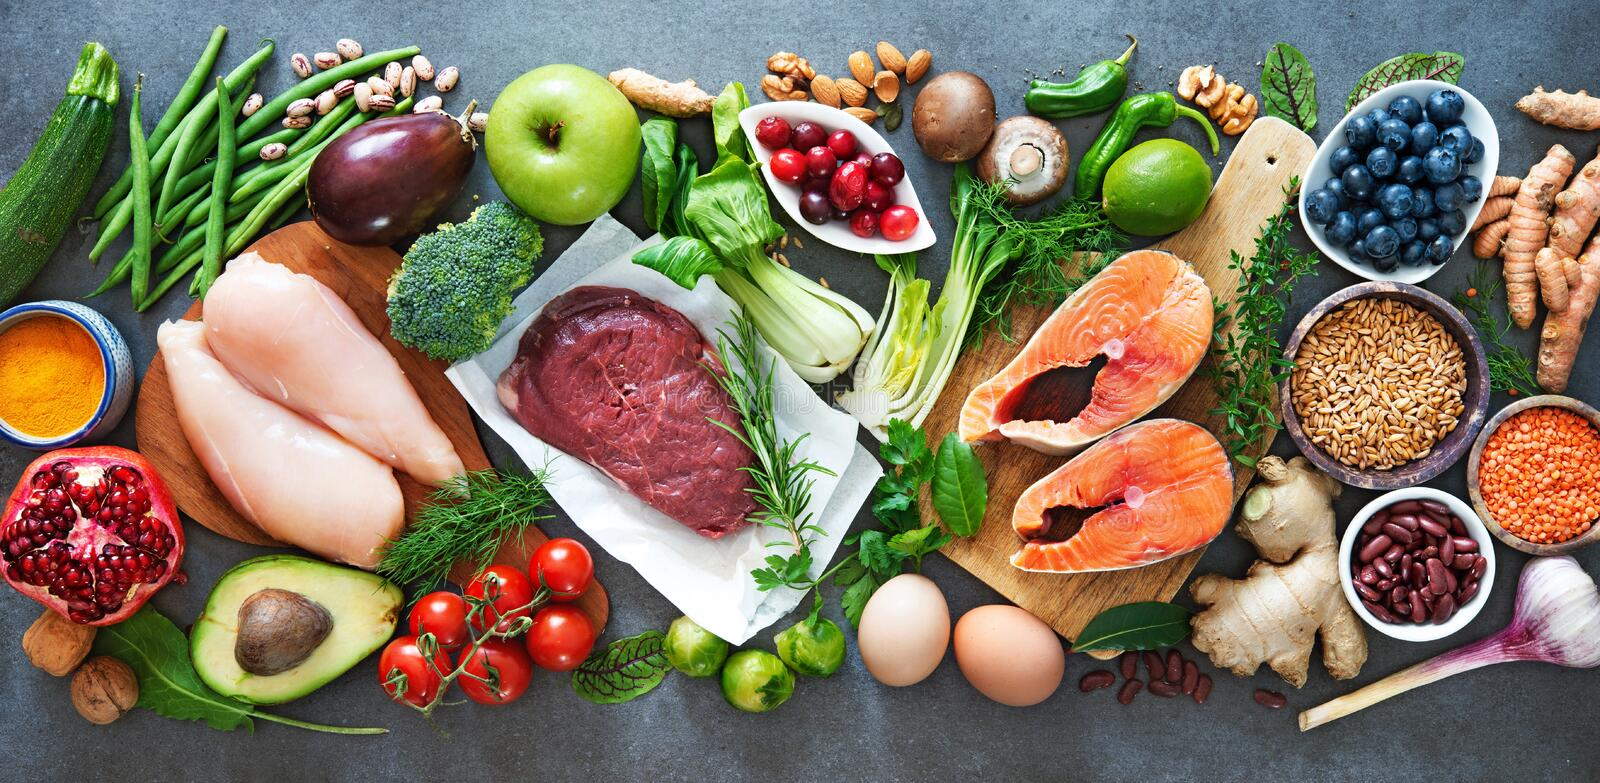 Balanced diet food background royalty free stock image